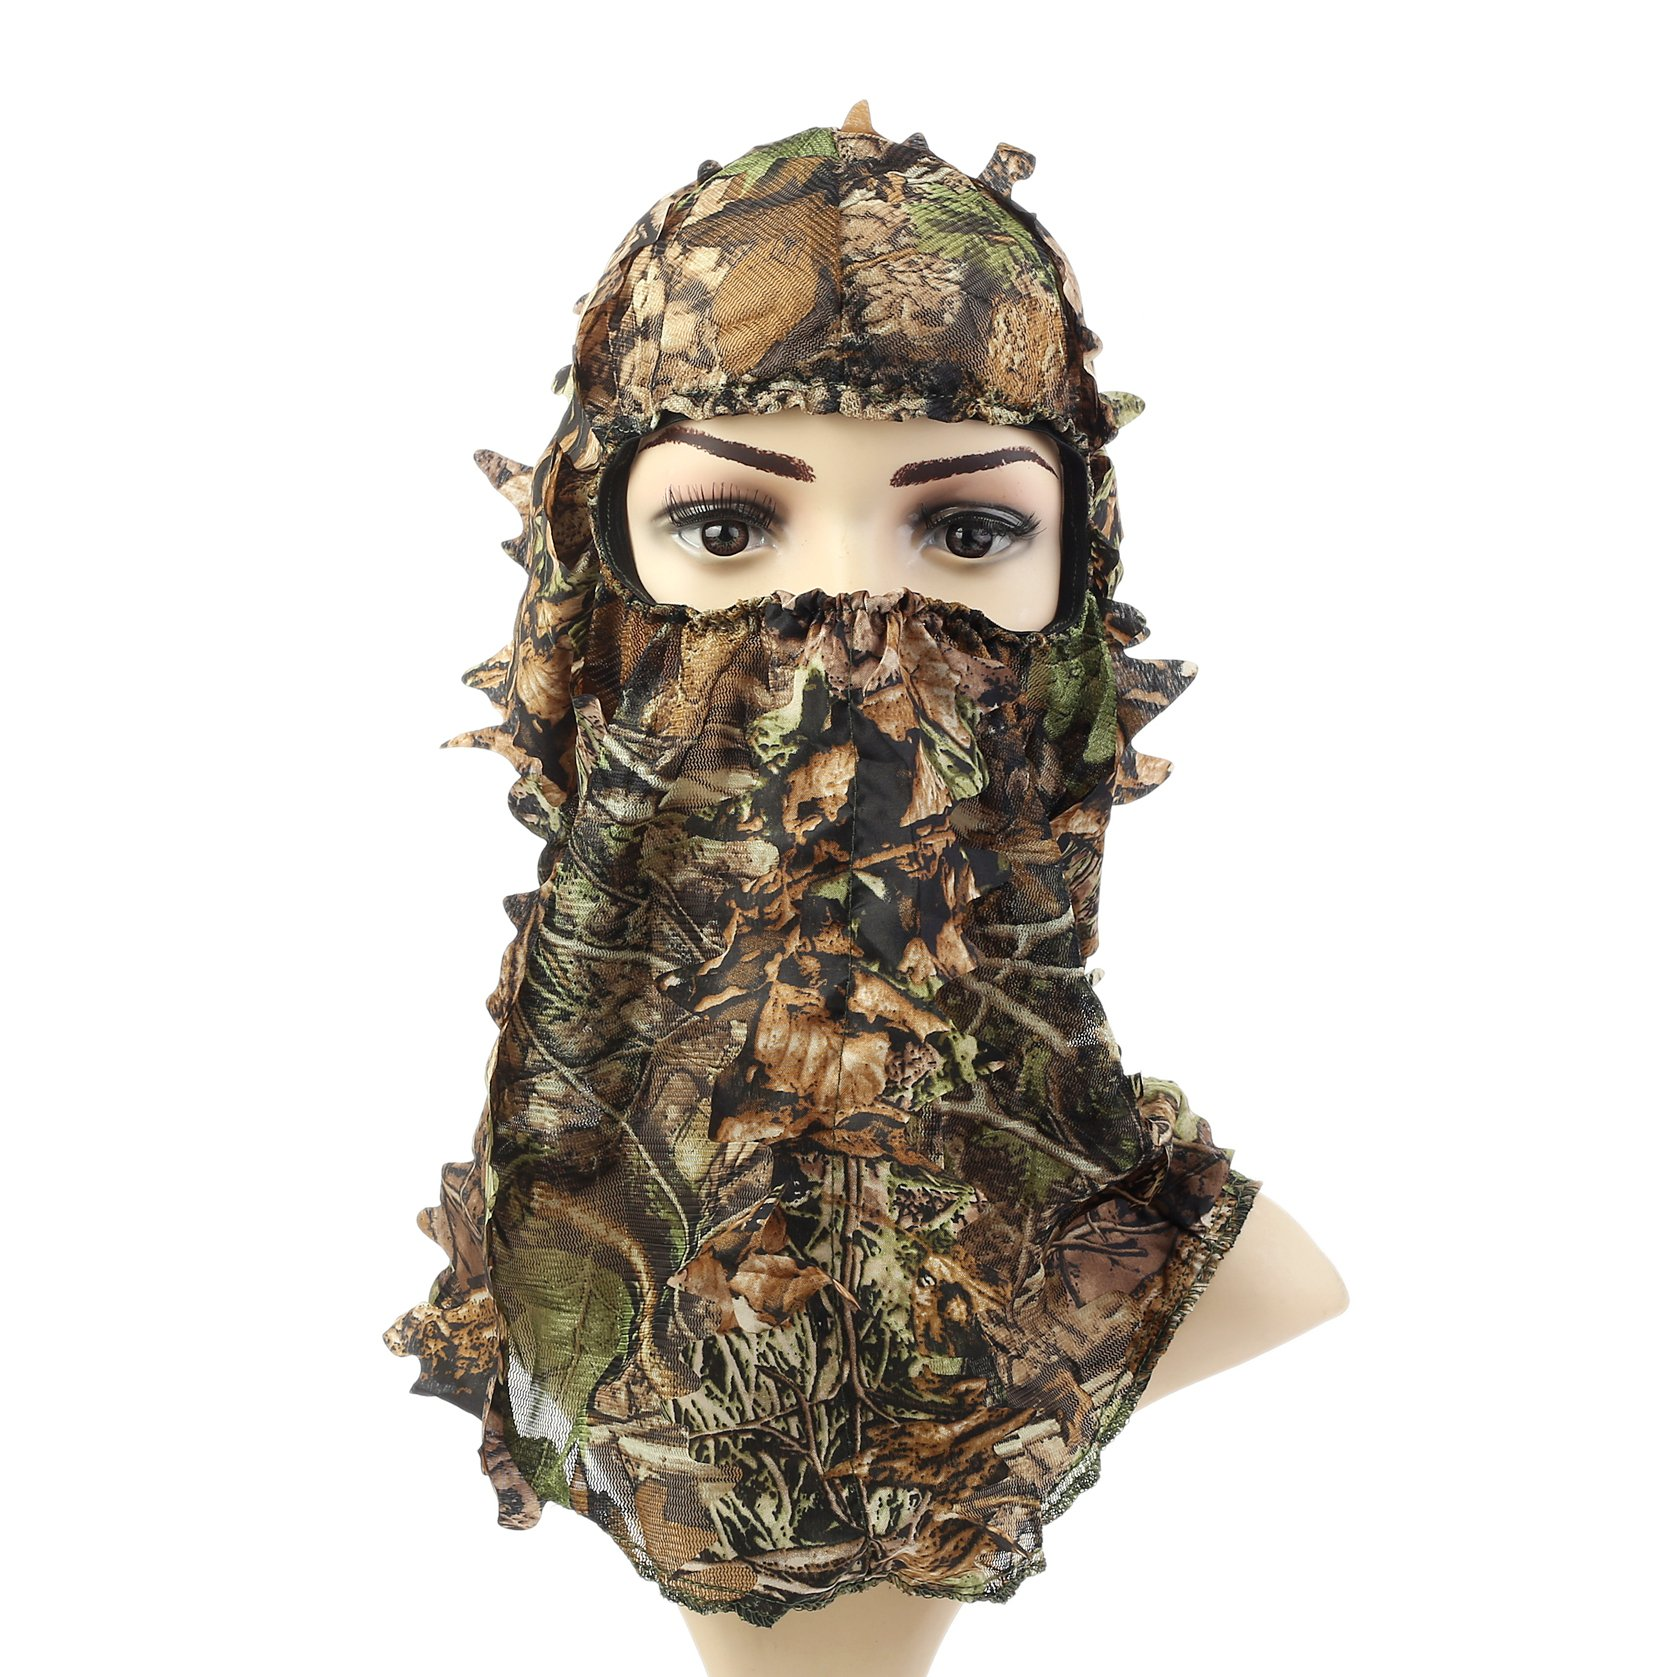 ABCAMO Light Weight Hunting Camouflage Full Cover 3D Leafy Face Mask by ABCAMO (Image #1)